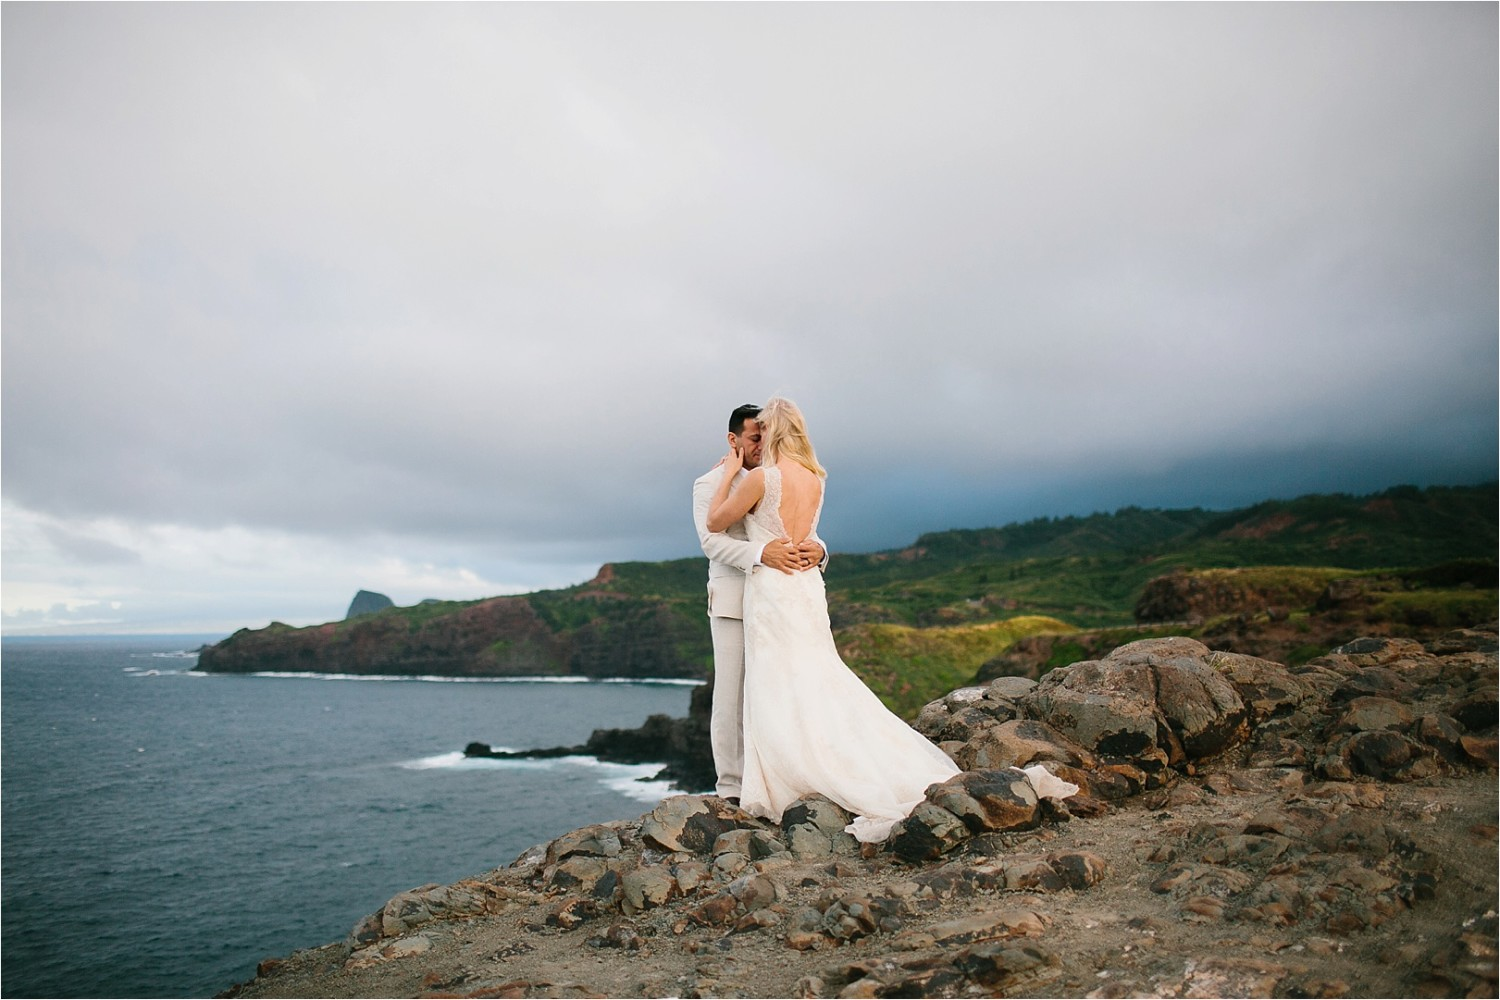 Tawnya + Serge || a windy after-session on a maui cliffside